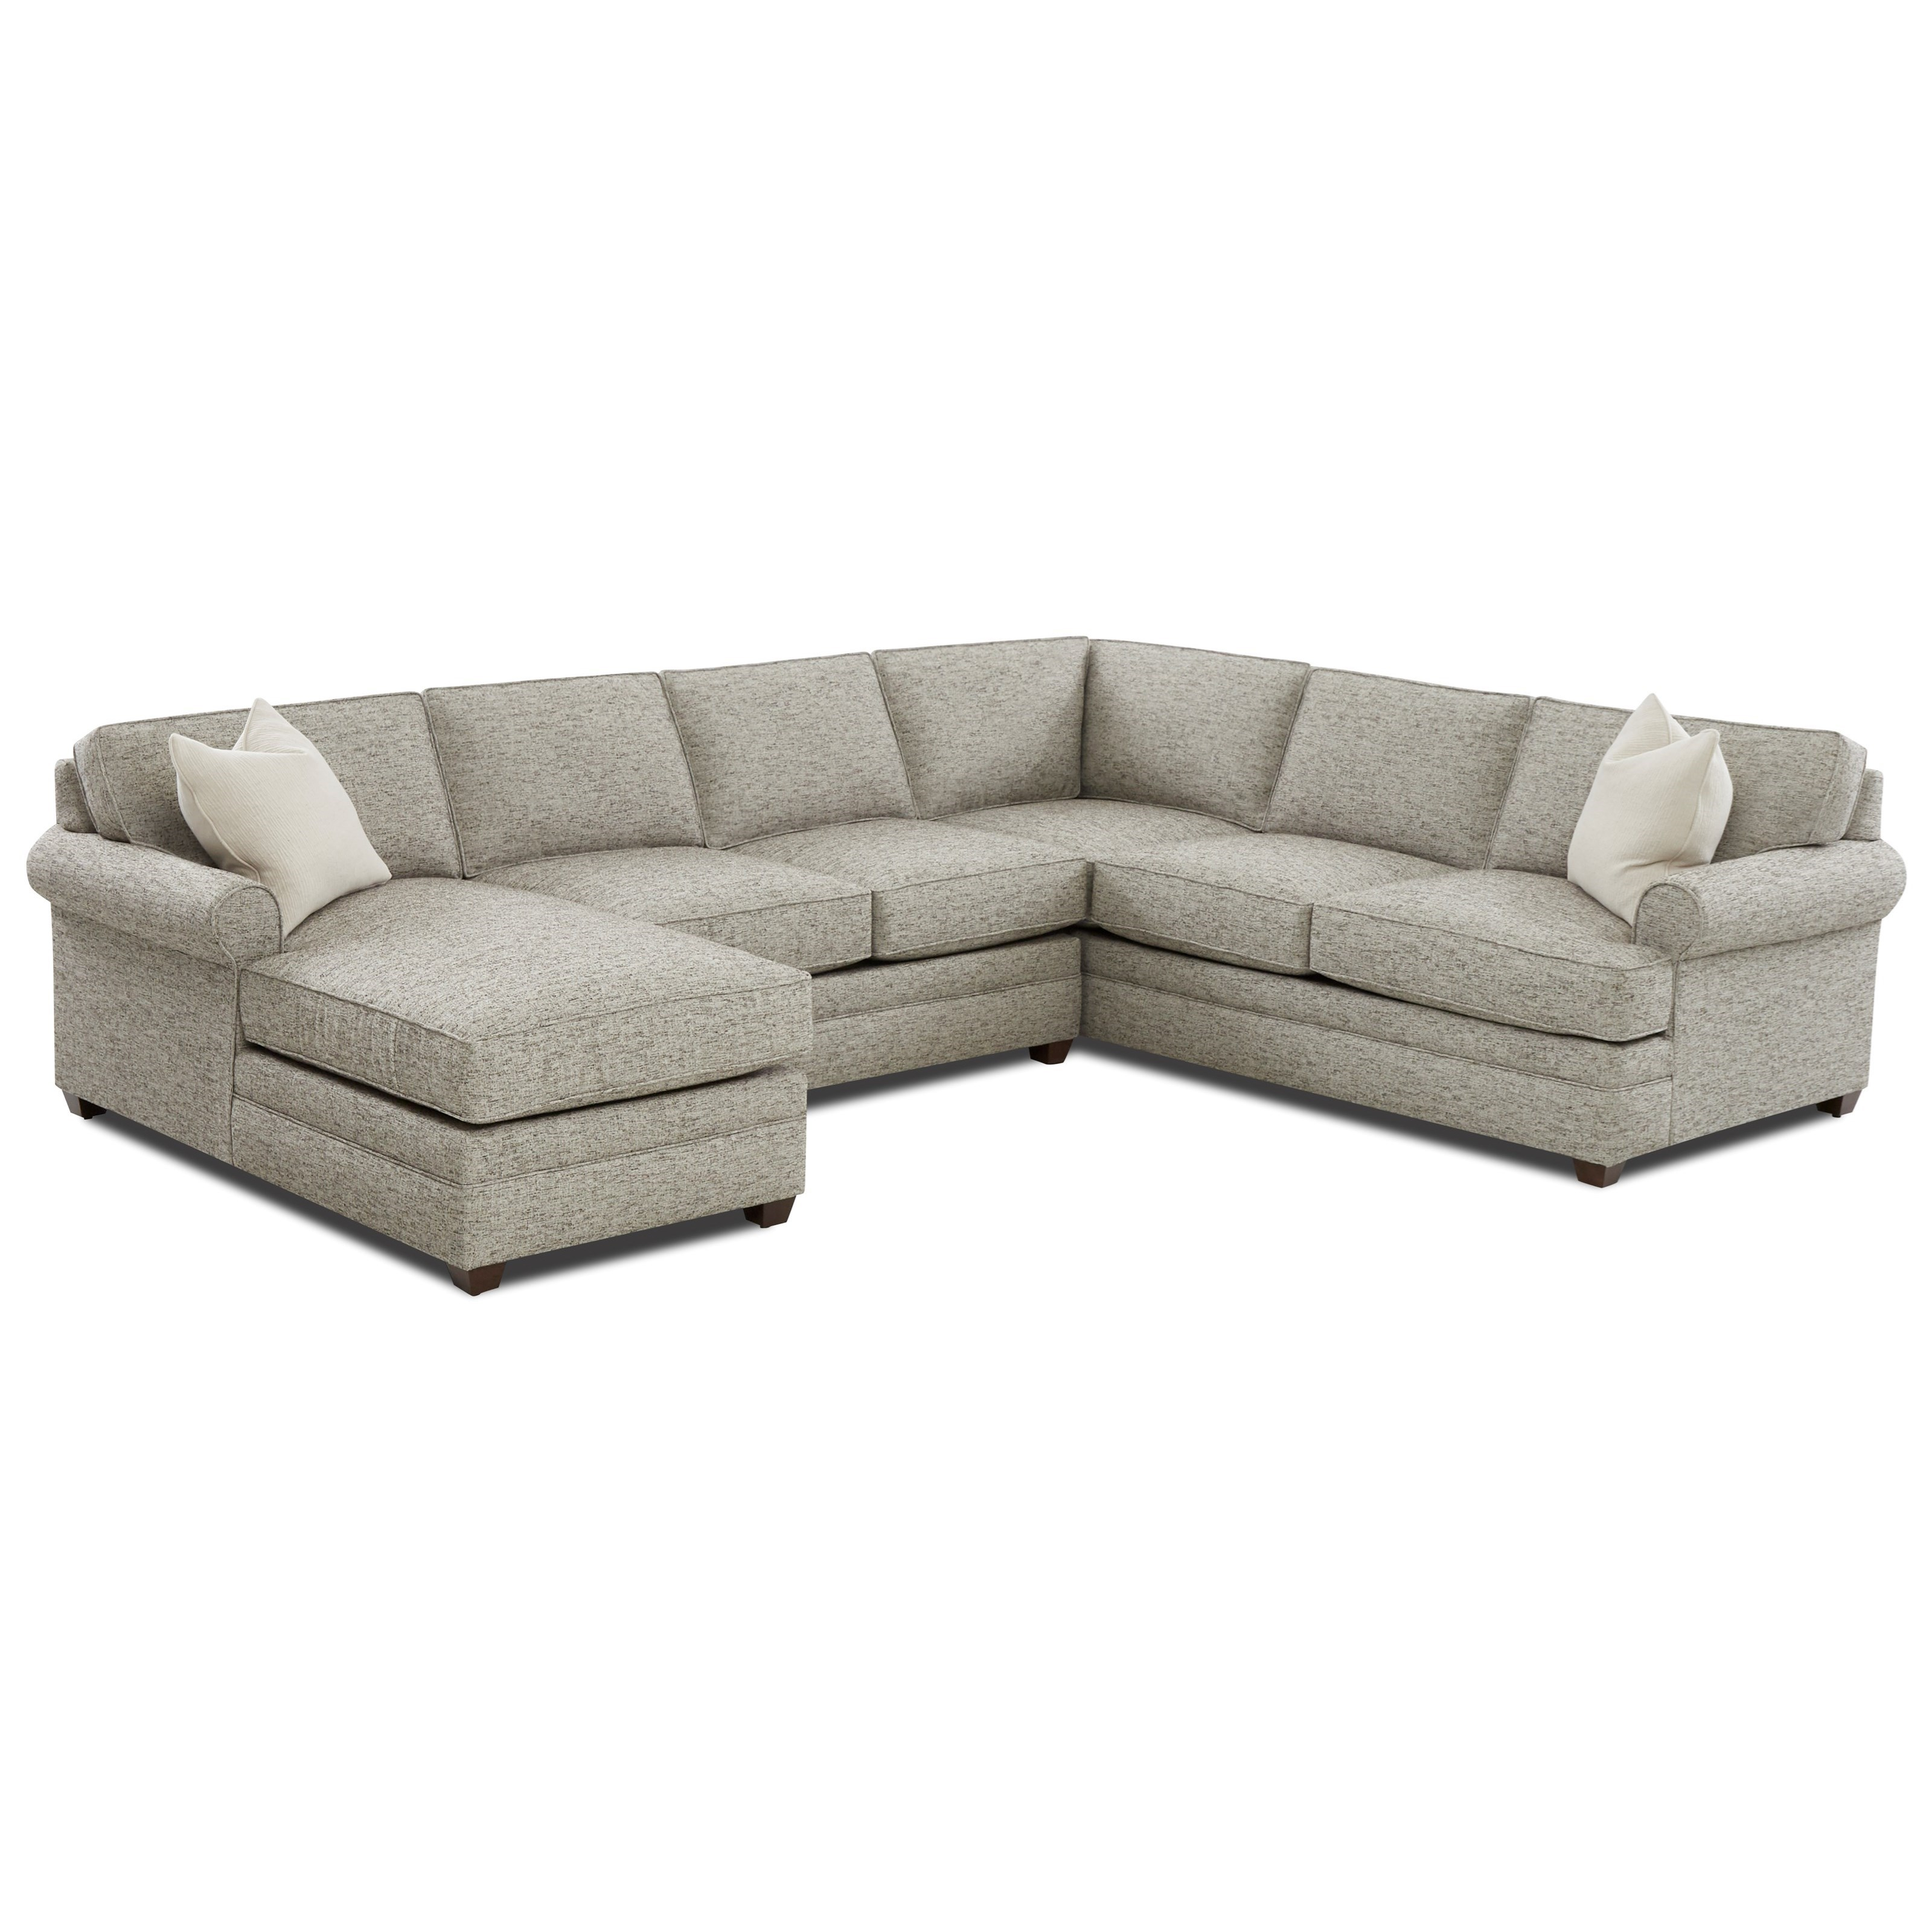 Living Your Way 3-Piece Sectional by Klaussner at Johnny Janosik